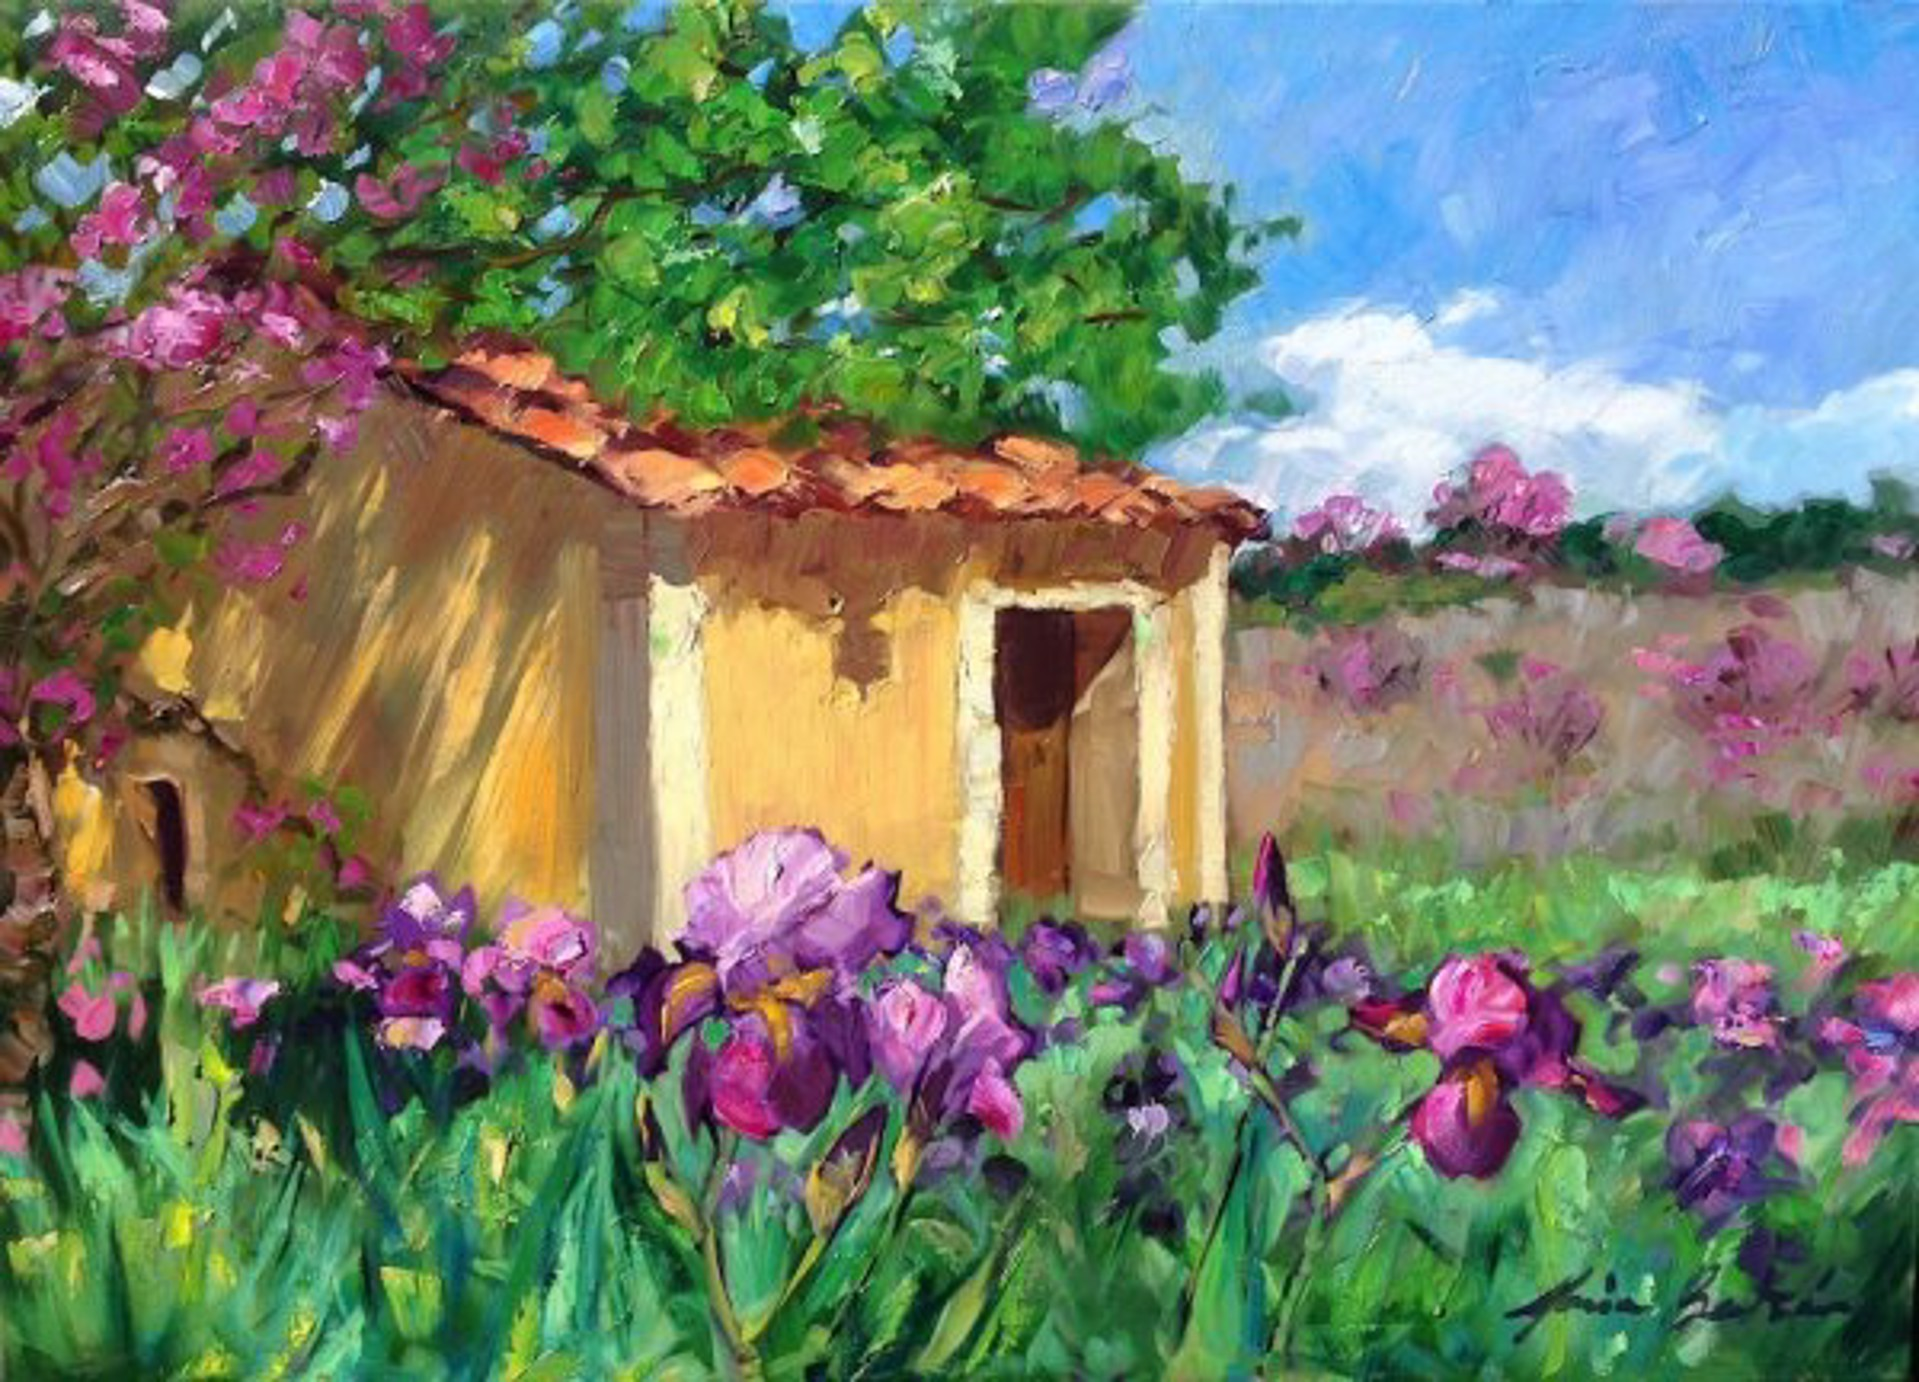 Irises By The Old Cabanon by Maria Bertrán